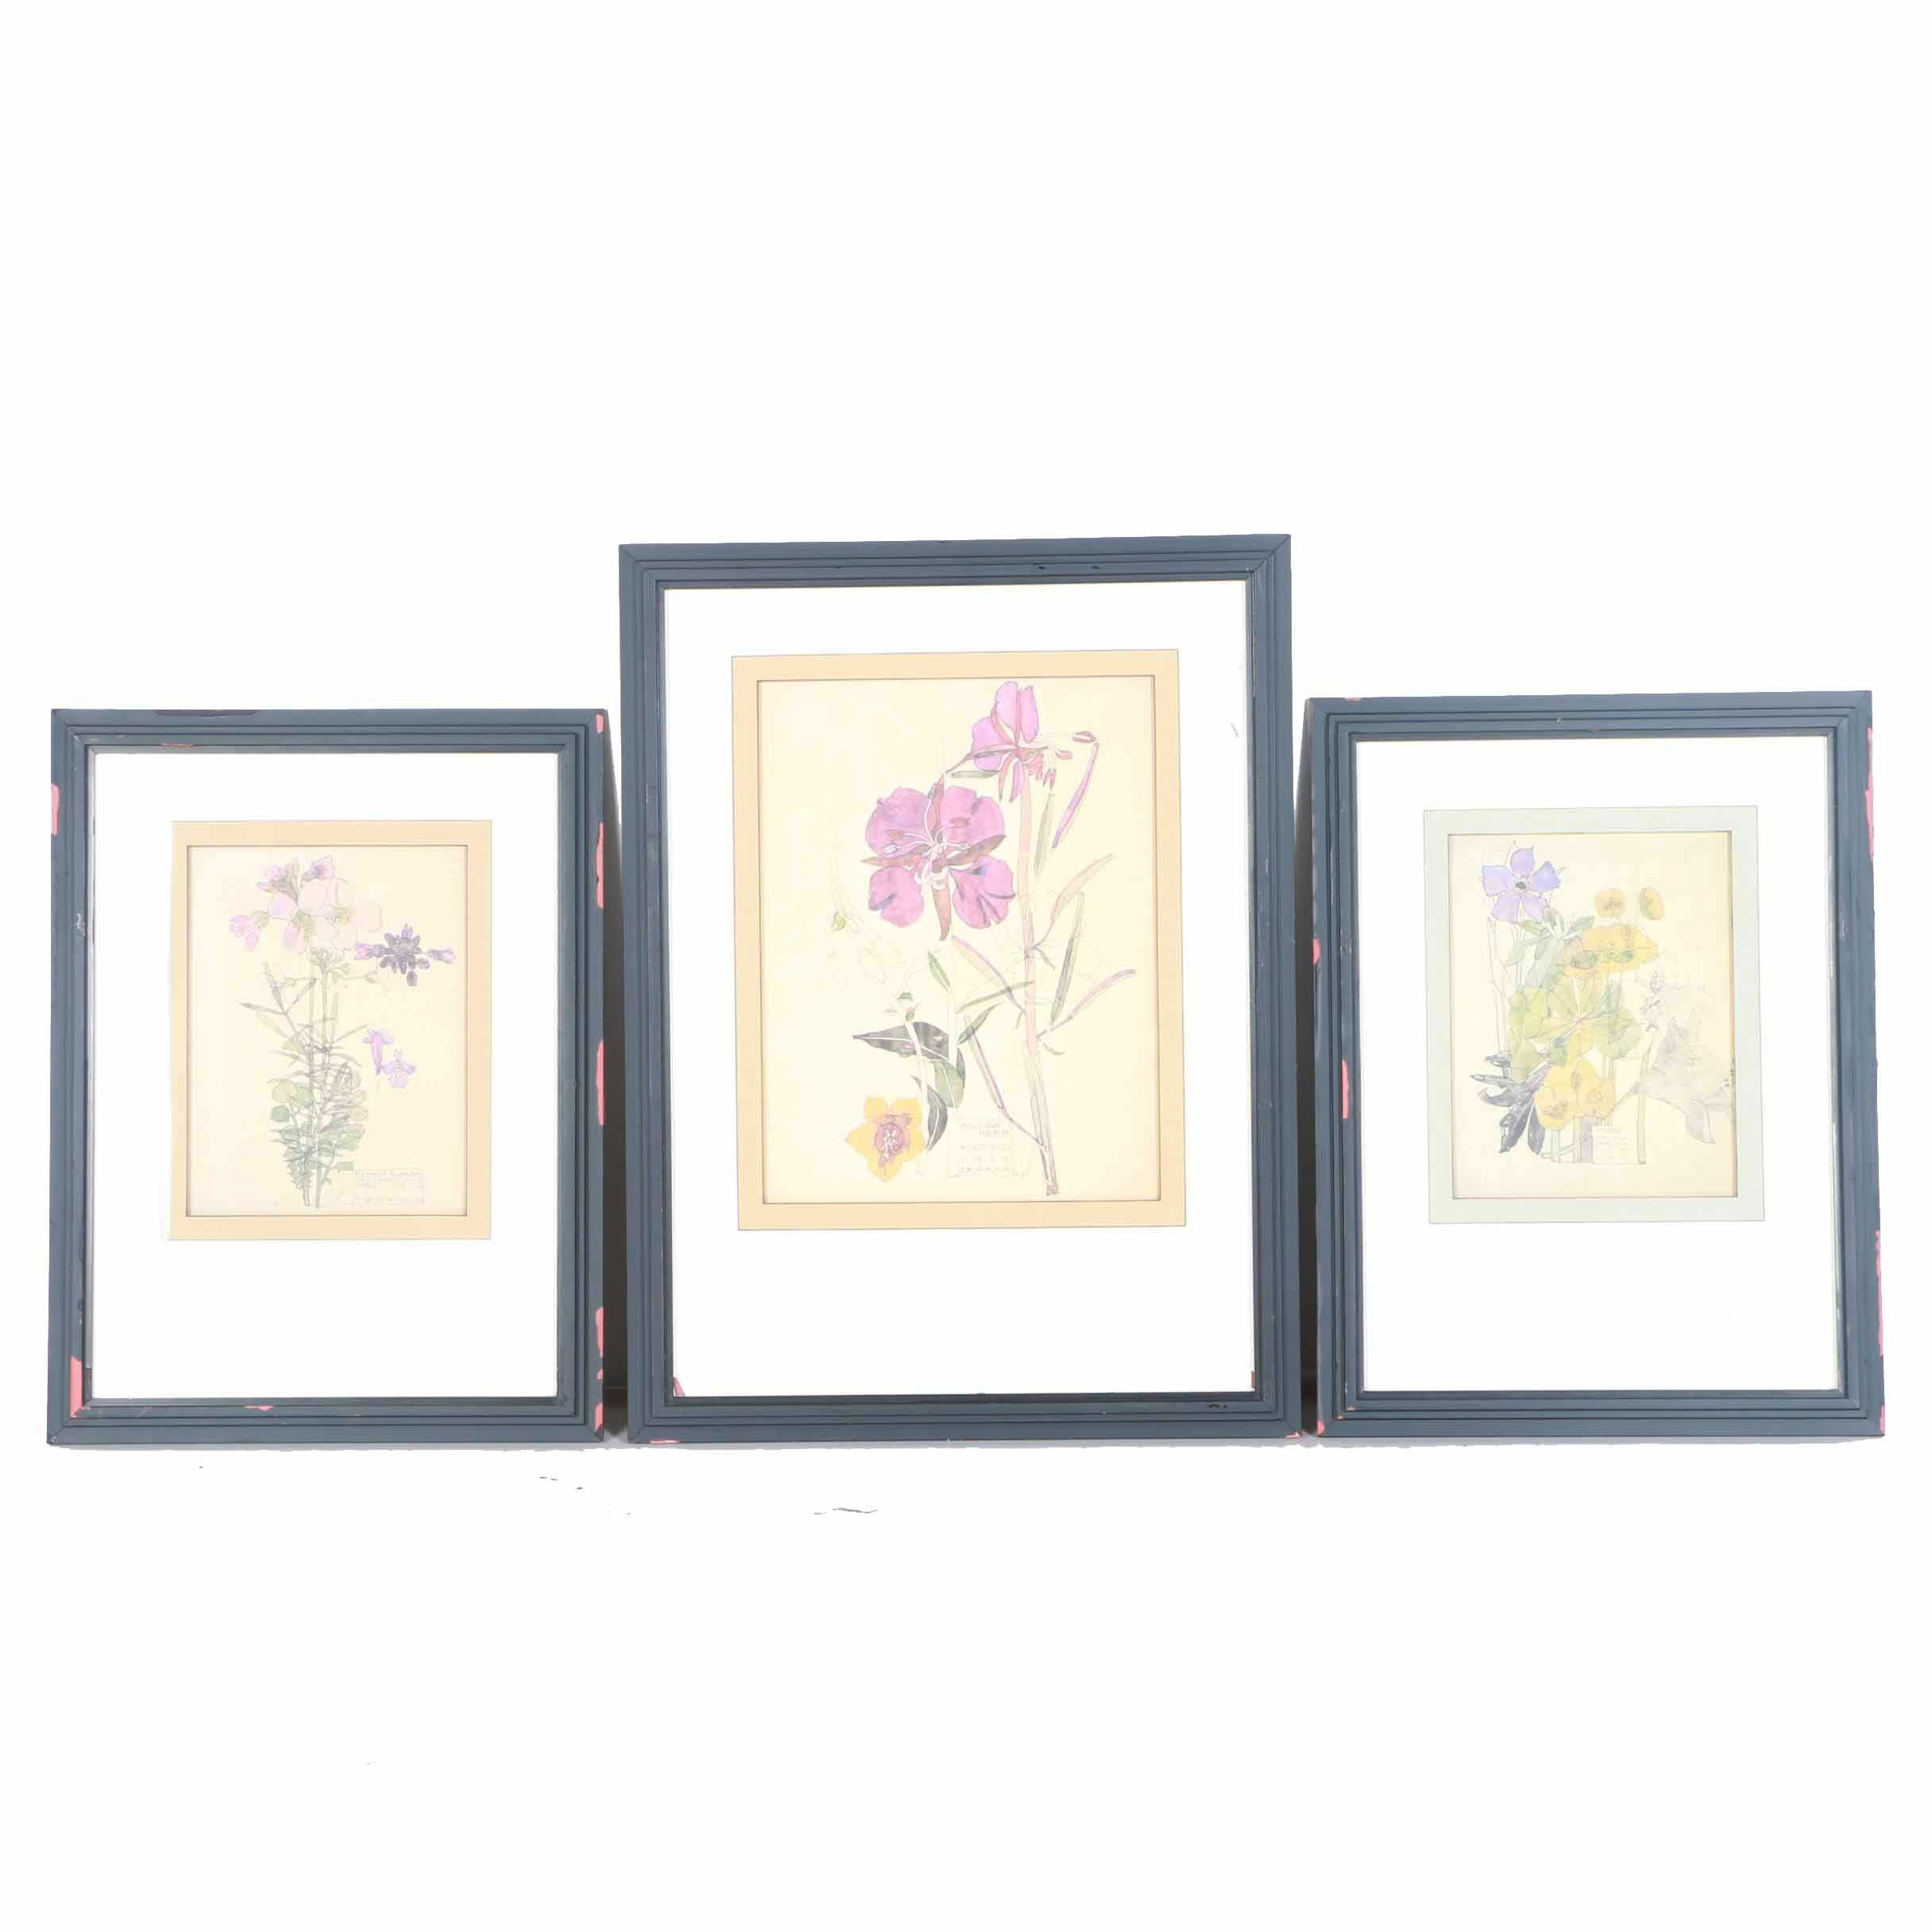 After Charles Rennie Mackintosh Offset Lithographs of Flowers